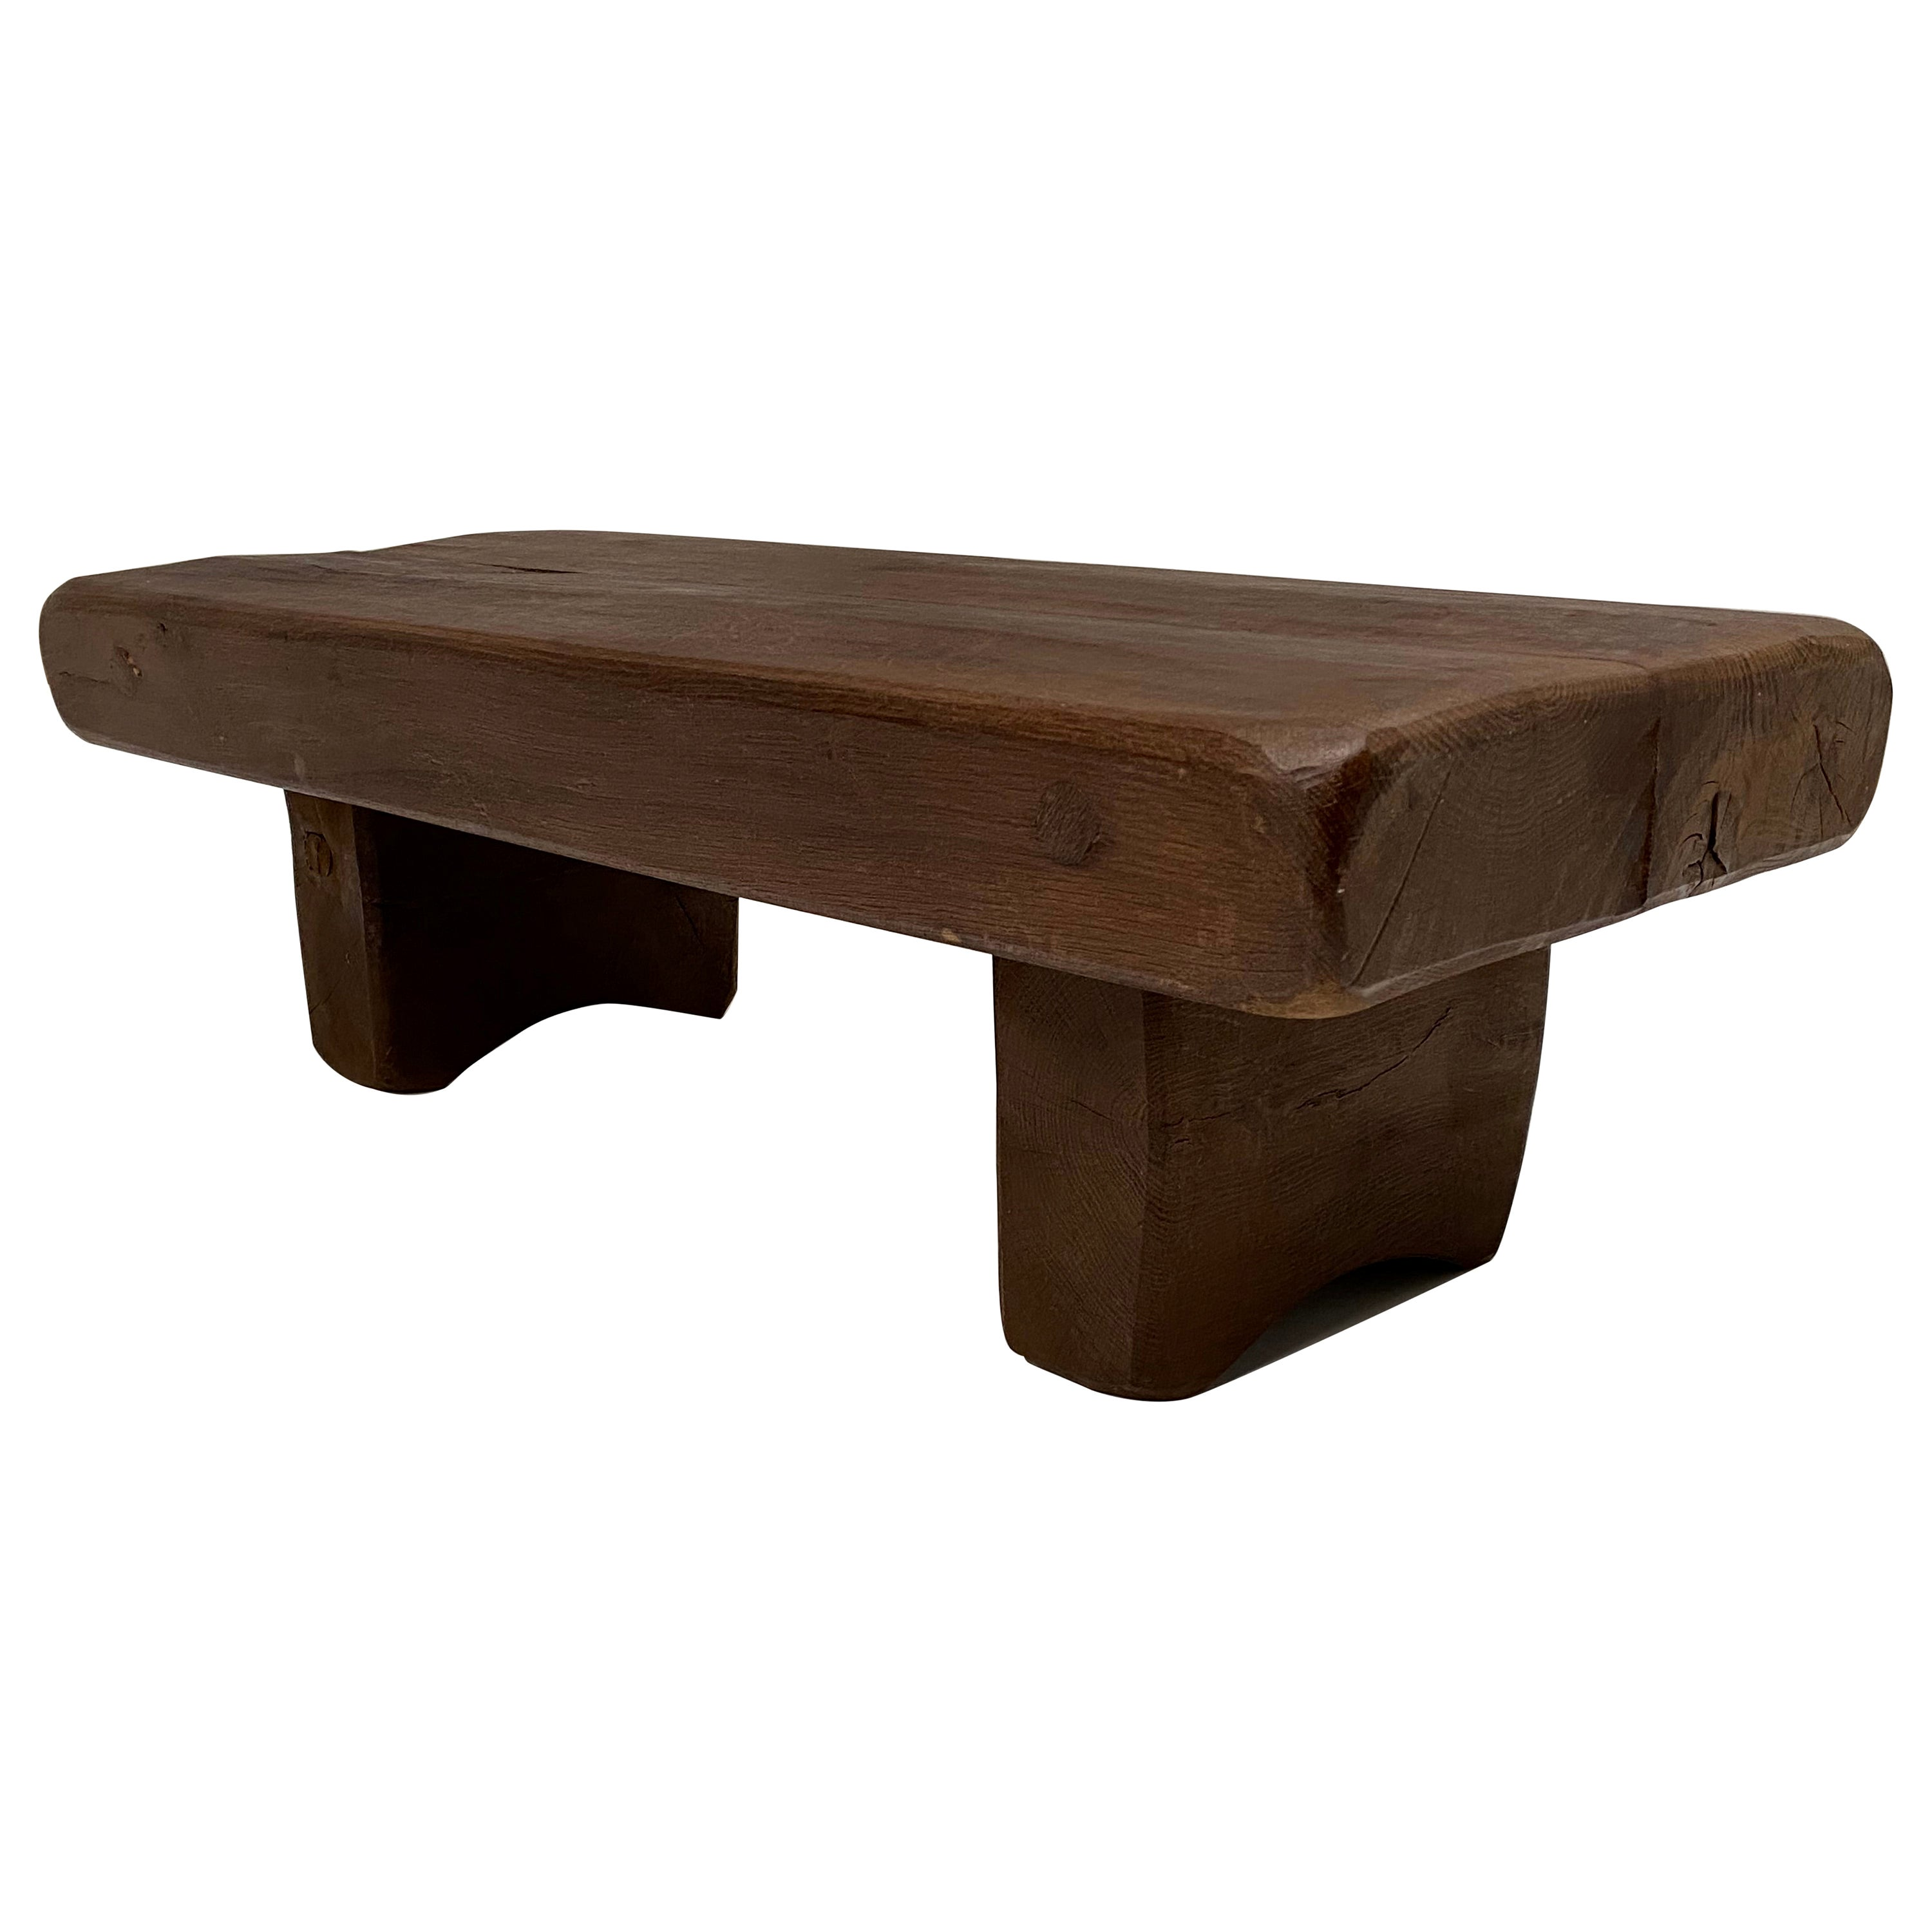 French Midcentury Solid Rustic Carved Oak Side or Coffee Table, France, 1960s